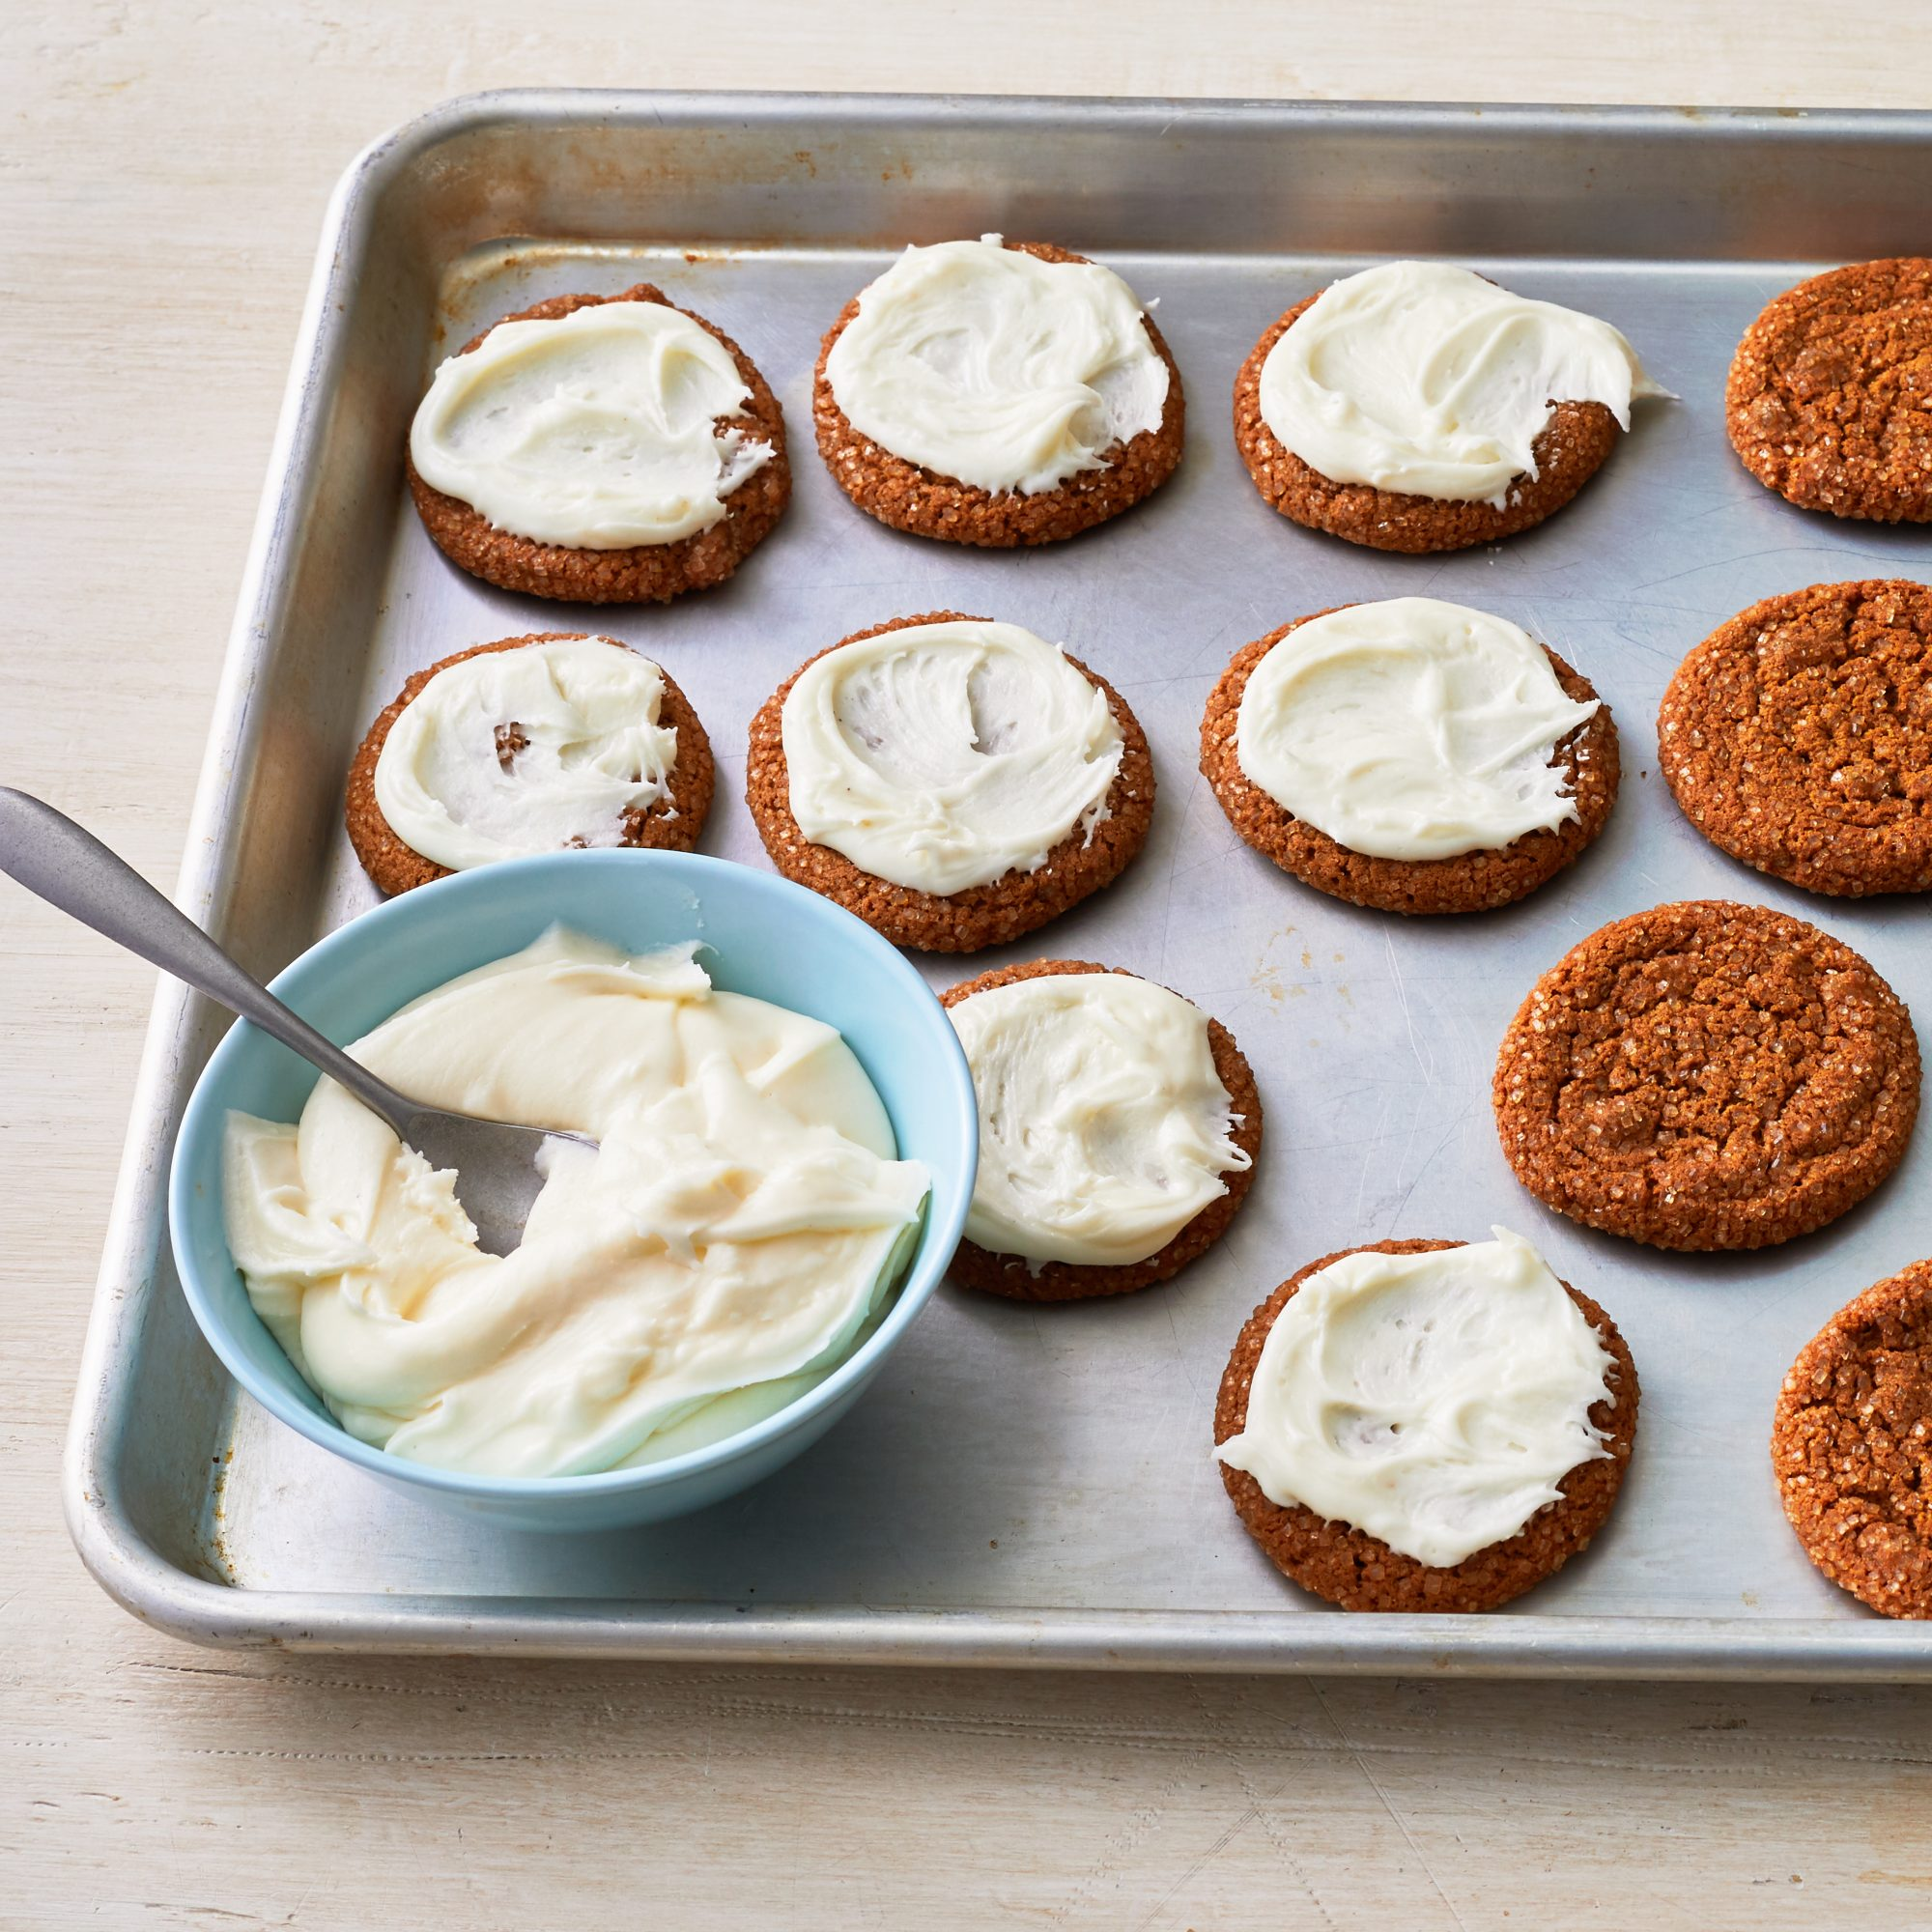 eggnog frosting on molasses cookies